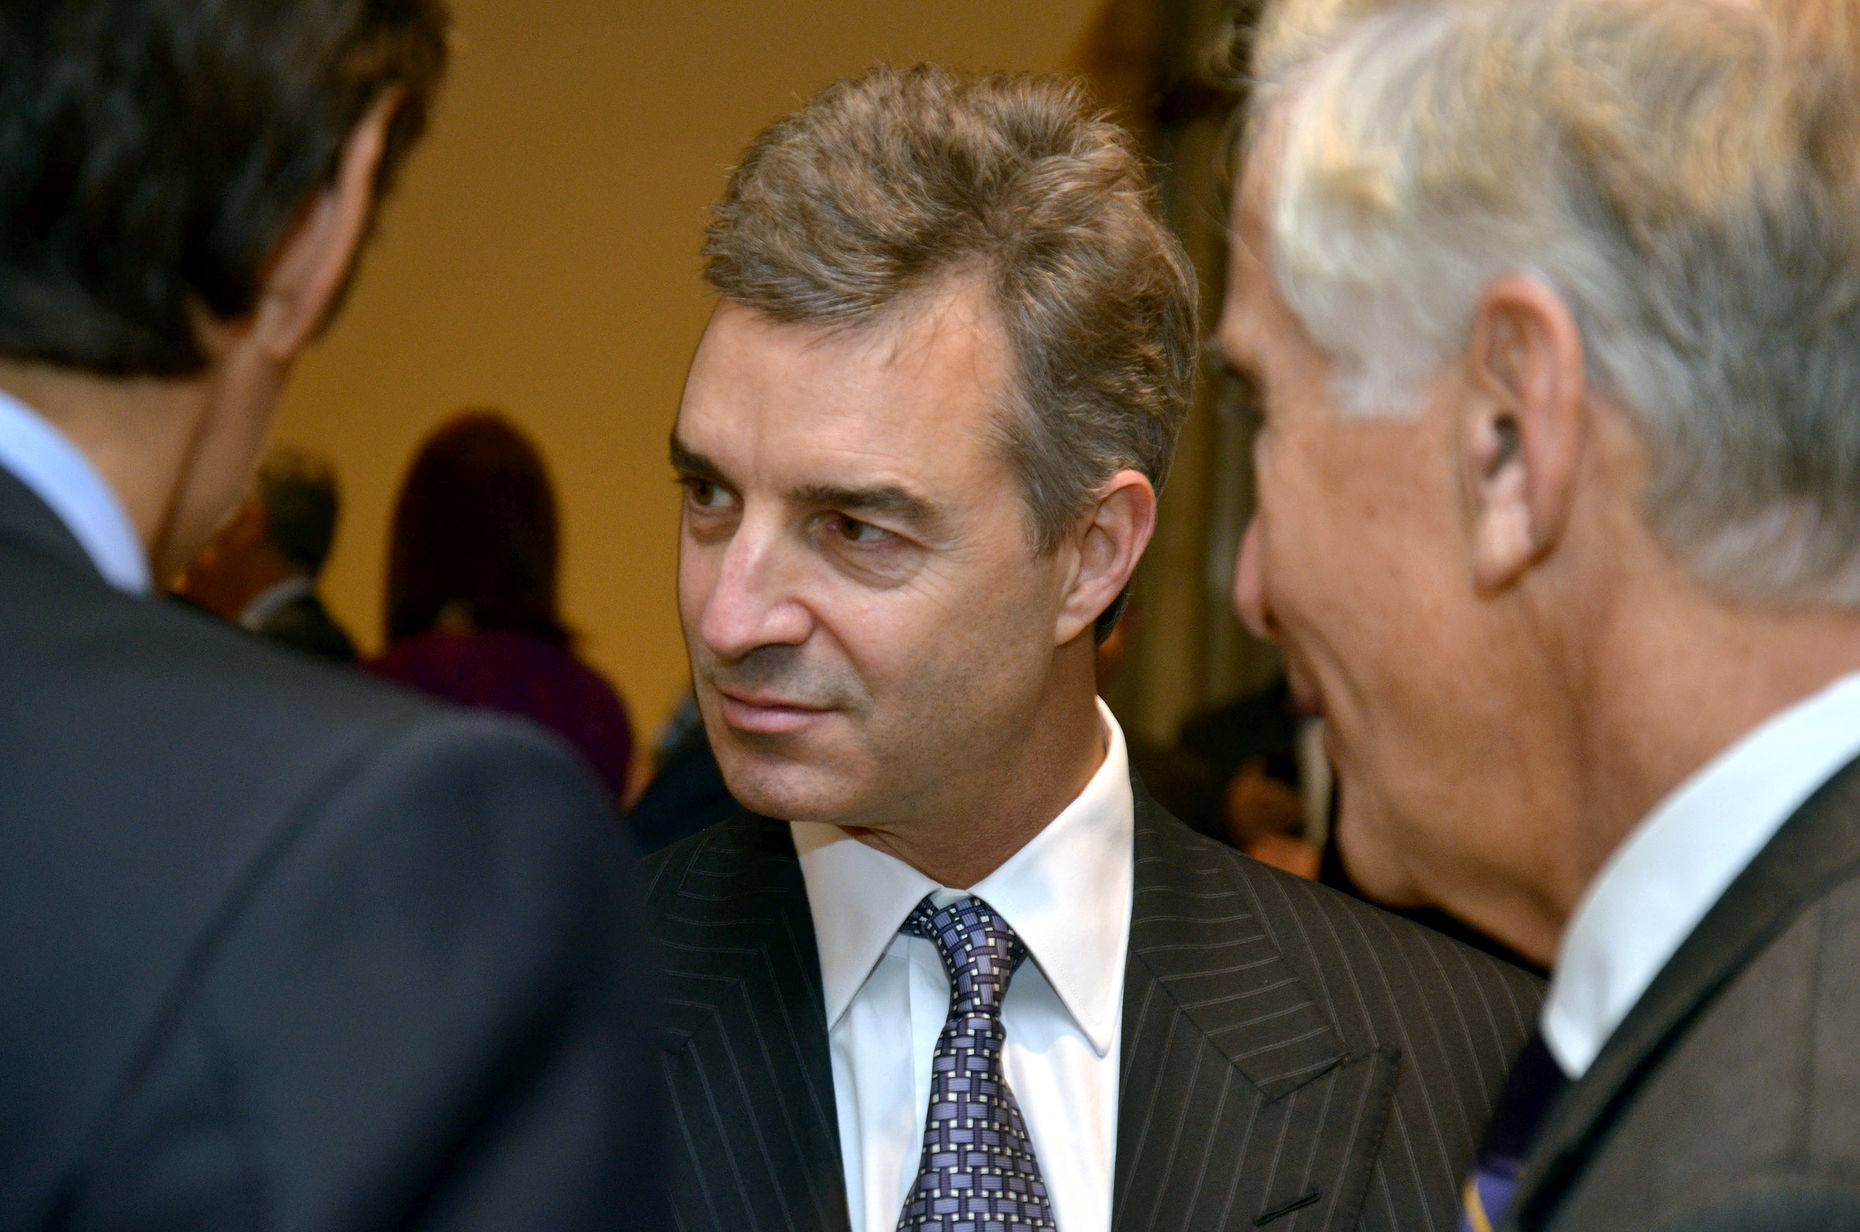 Dan Loeb, center, of Third Point. Photo by Bloomberg.